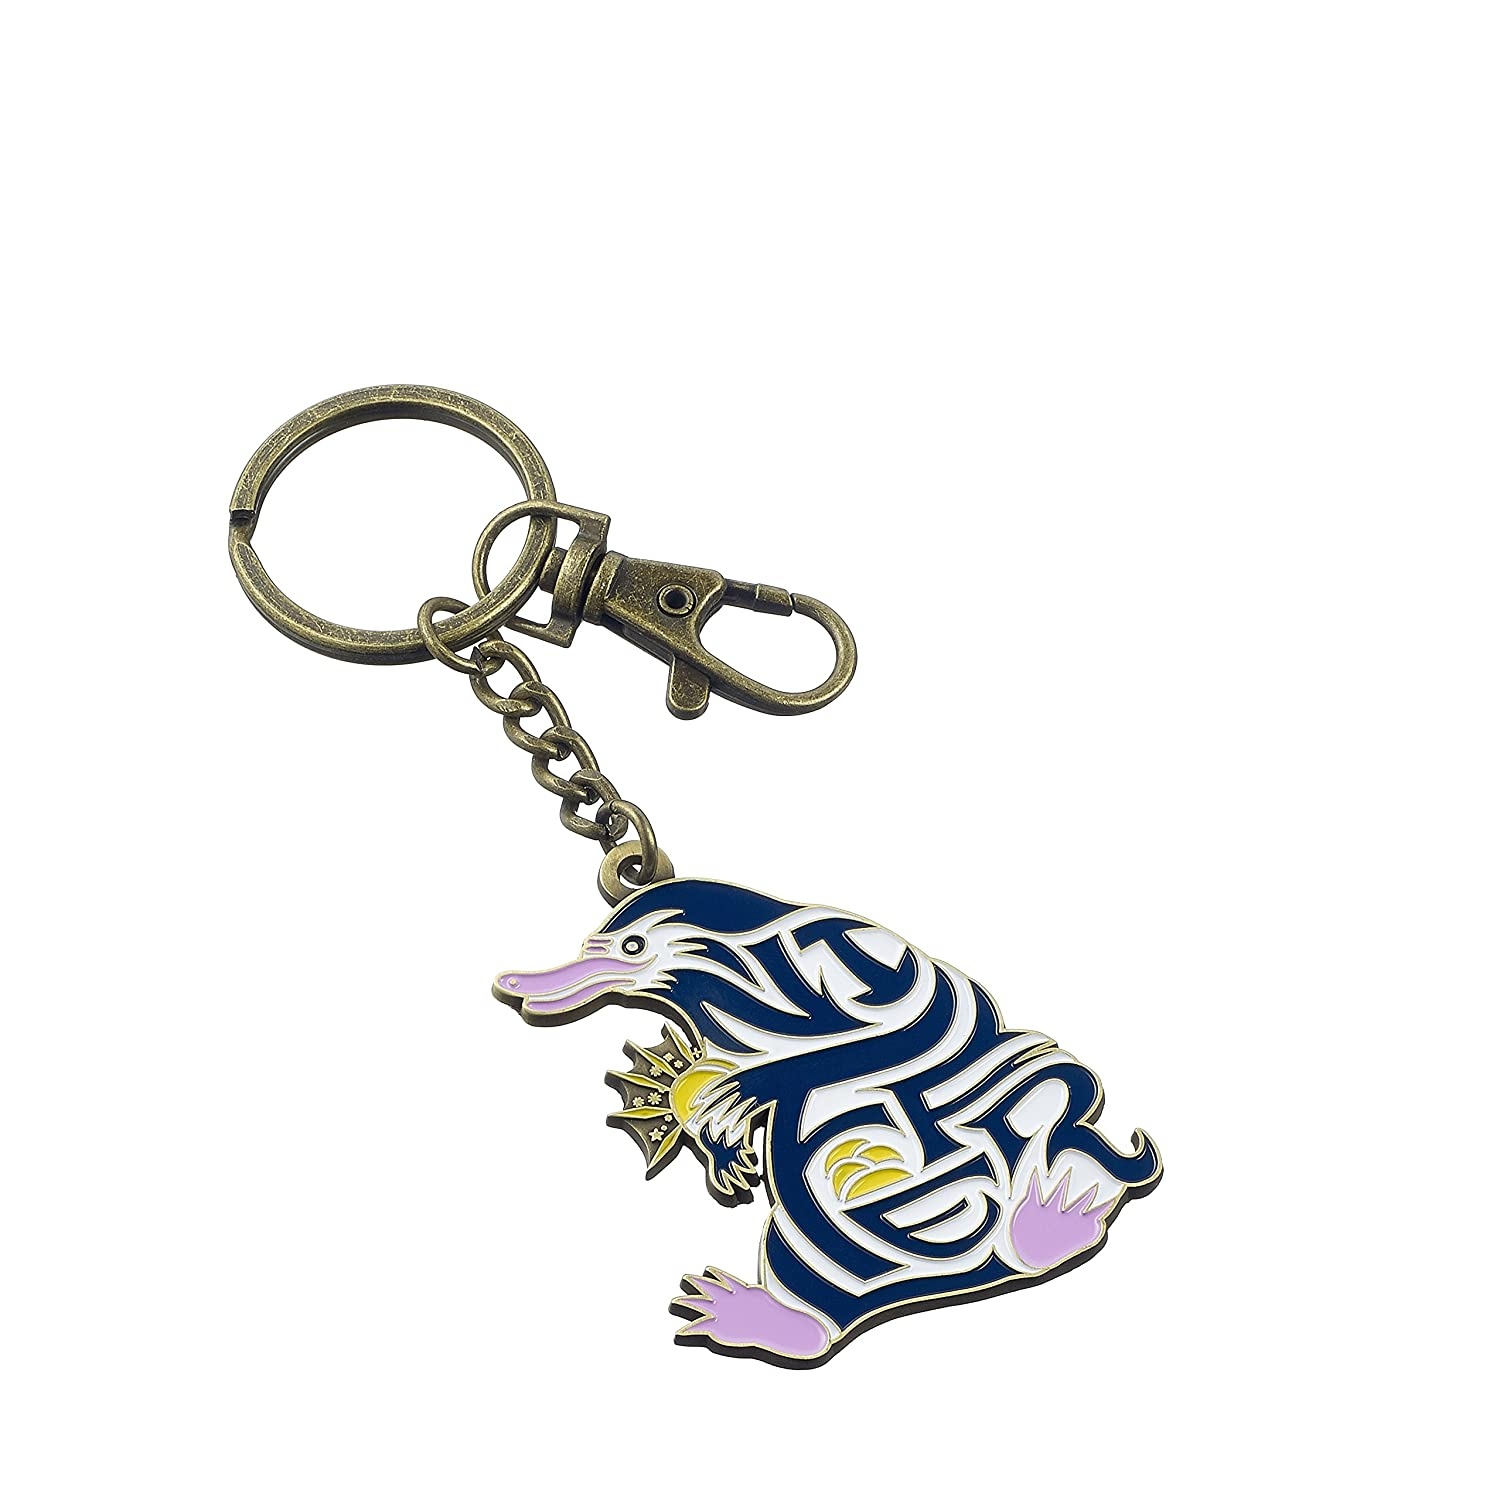 Officially Licensed Fantastic Beasts and Where to Find Them Niffler Keyring Keychain FEK0018